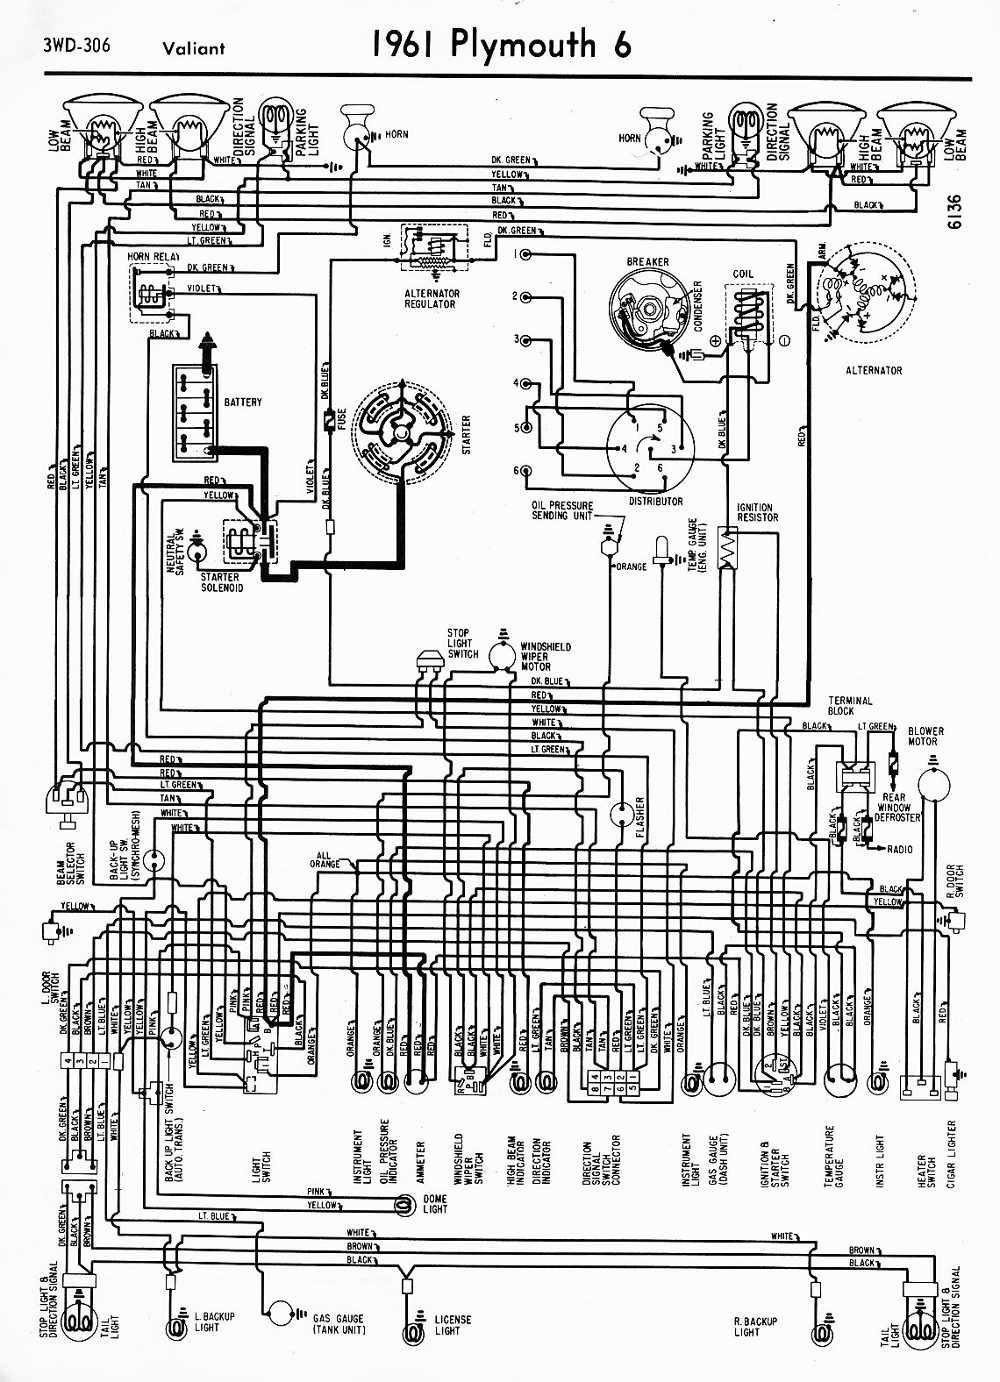 wiring diagrams of 1961 plymouth 6 valiant?t\\\\\\\=1508746019 1970 dodge dart wiring diagram 1970 dodge dart colors \u2022 free 64 valiant wiring diagram at readyjetset.co